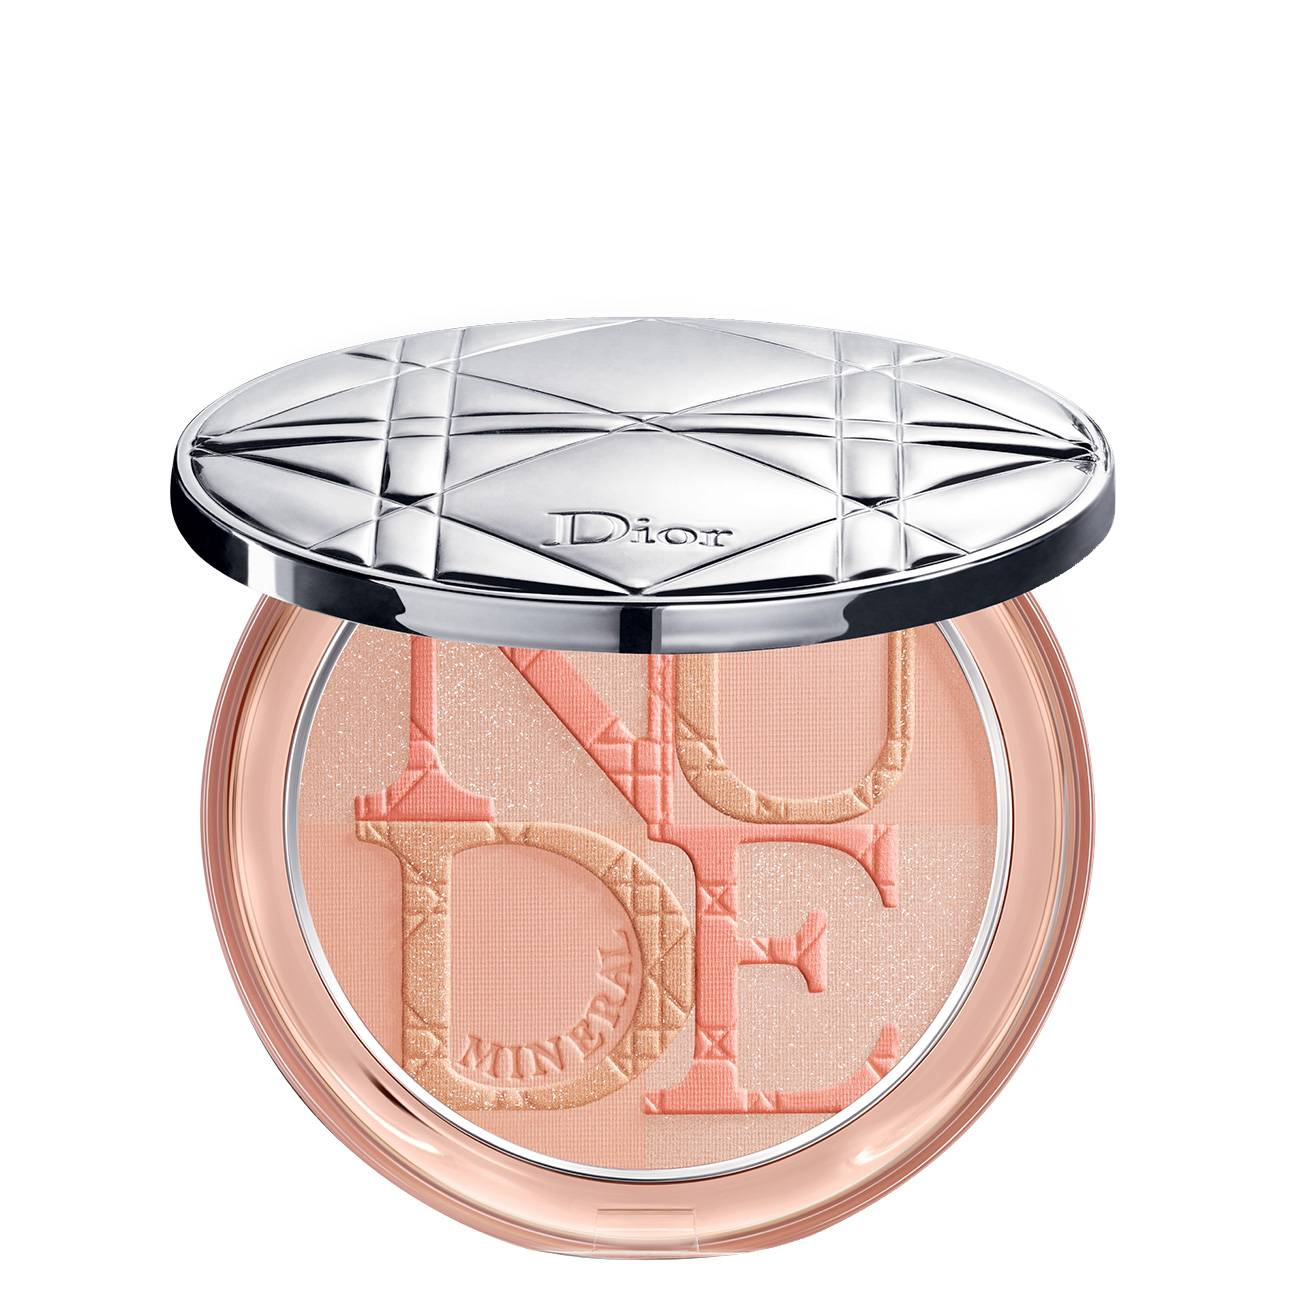 Diorskin Mineral Nude Air Glow Powder 01 10gr